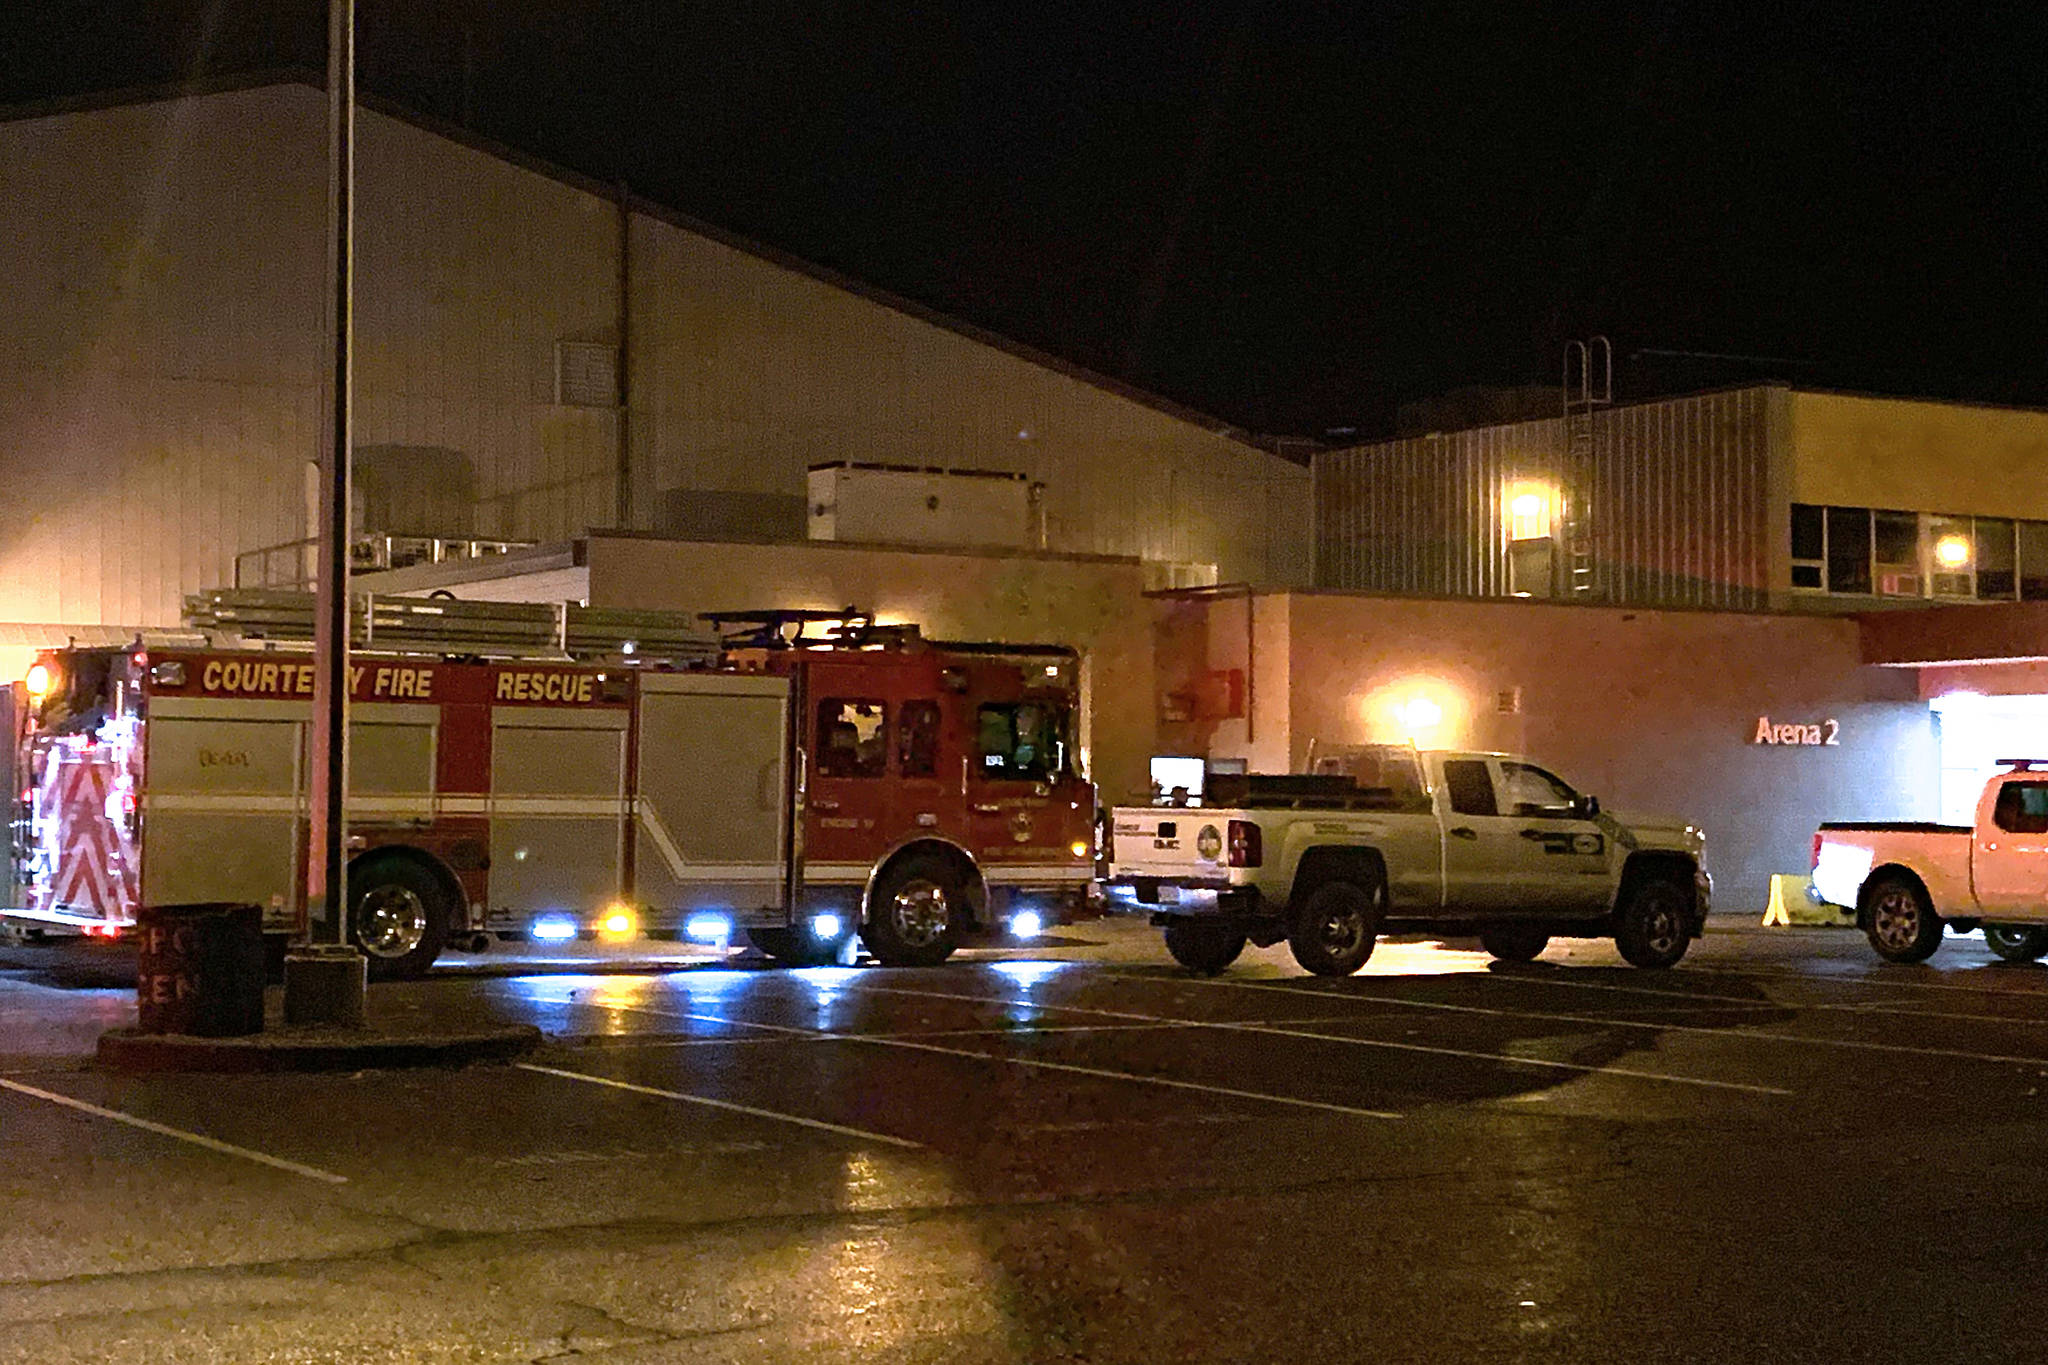 Members of the Courtenay Fire Department assist with an ammonia leak at the Comox Valley Sports Centre on Vanier Drive Thursday evening. Photo by Erin Haluschak